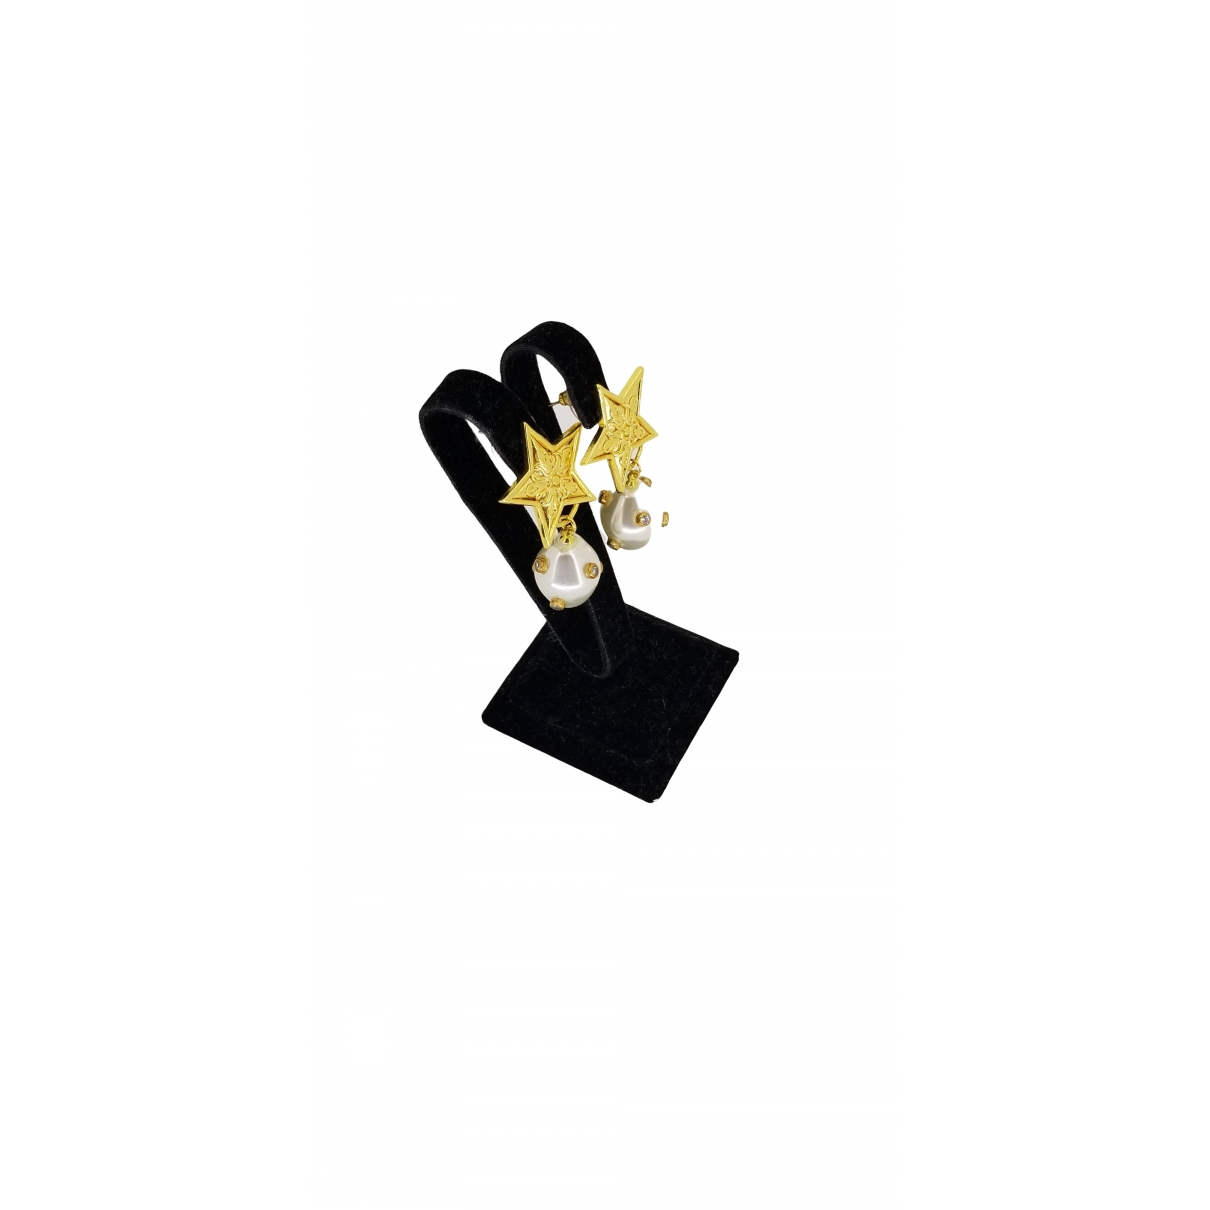 Non Signe / Unsigned Motifs Etoiles OhrRing in  Gelb Gelbgold